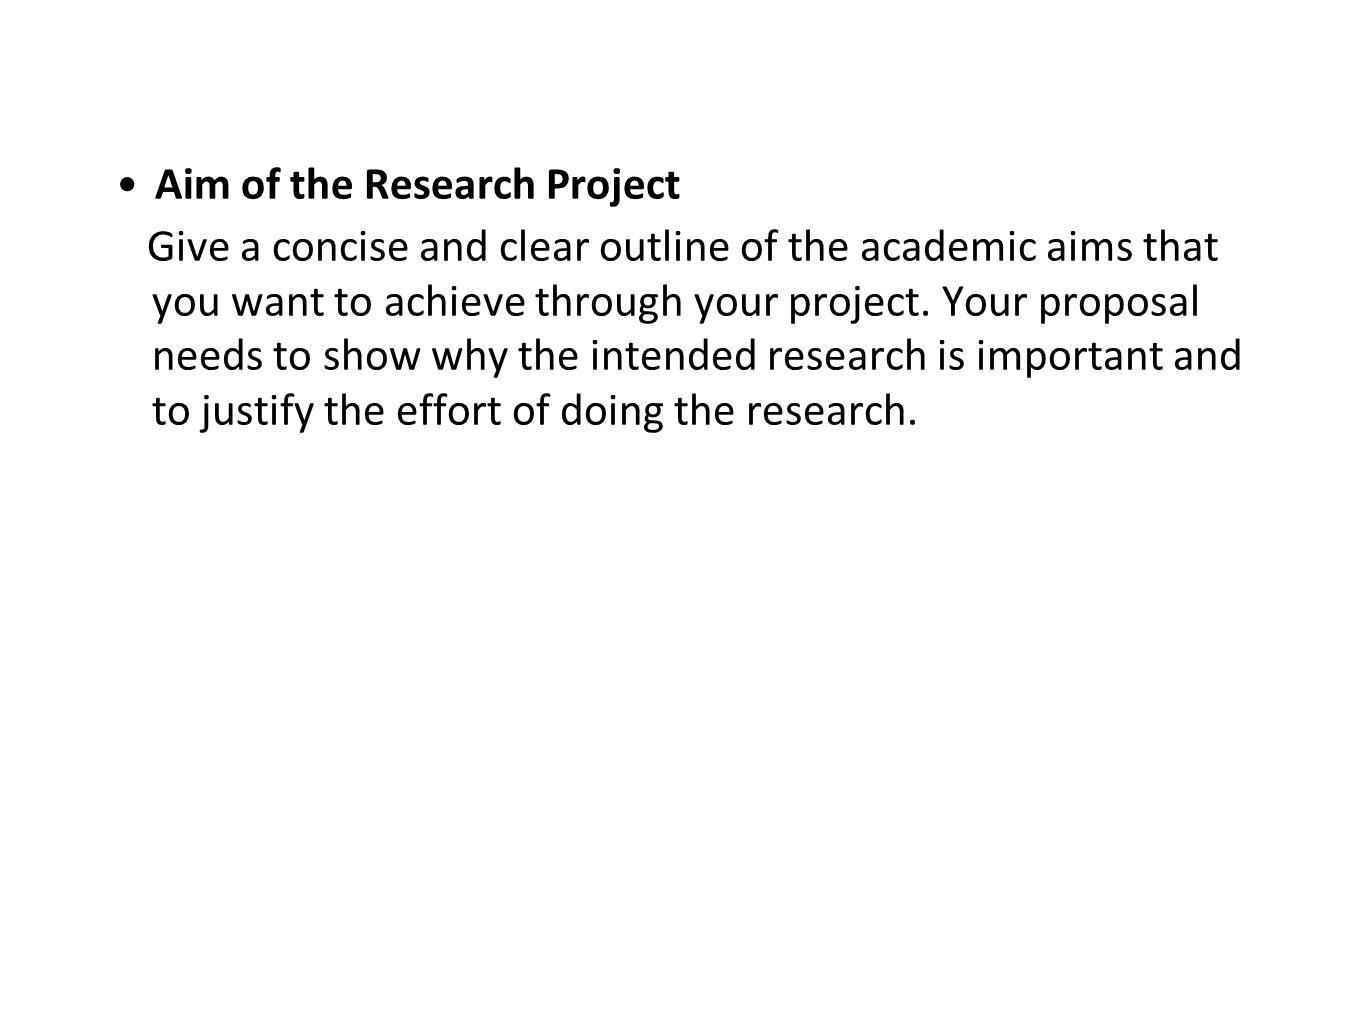 Aim of the Research Project